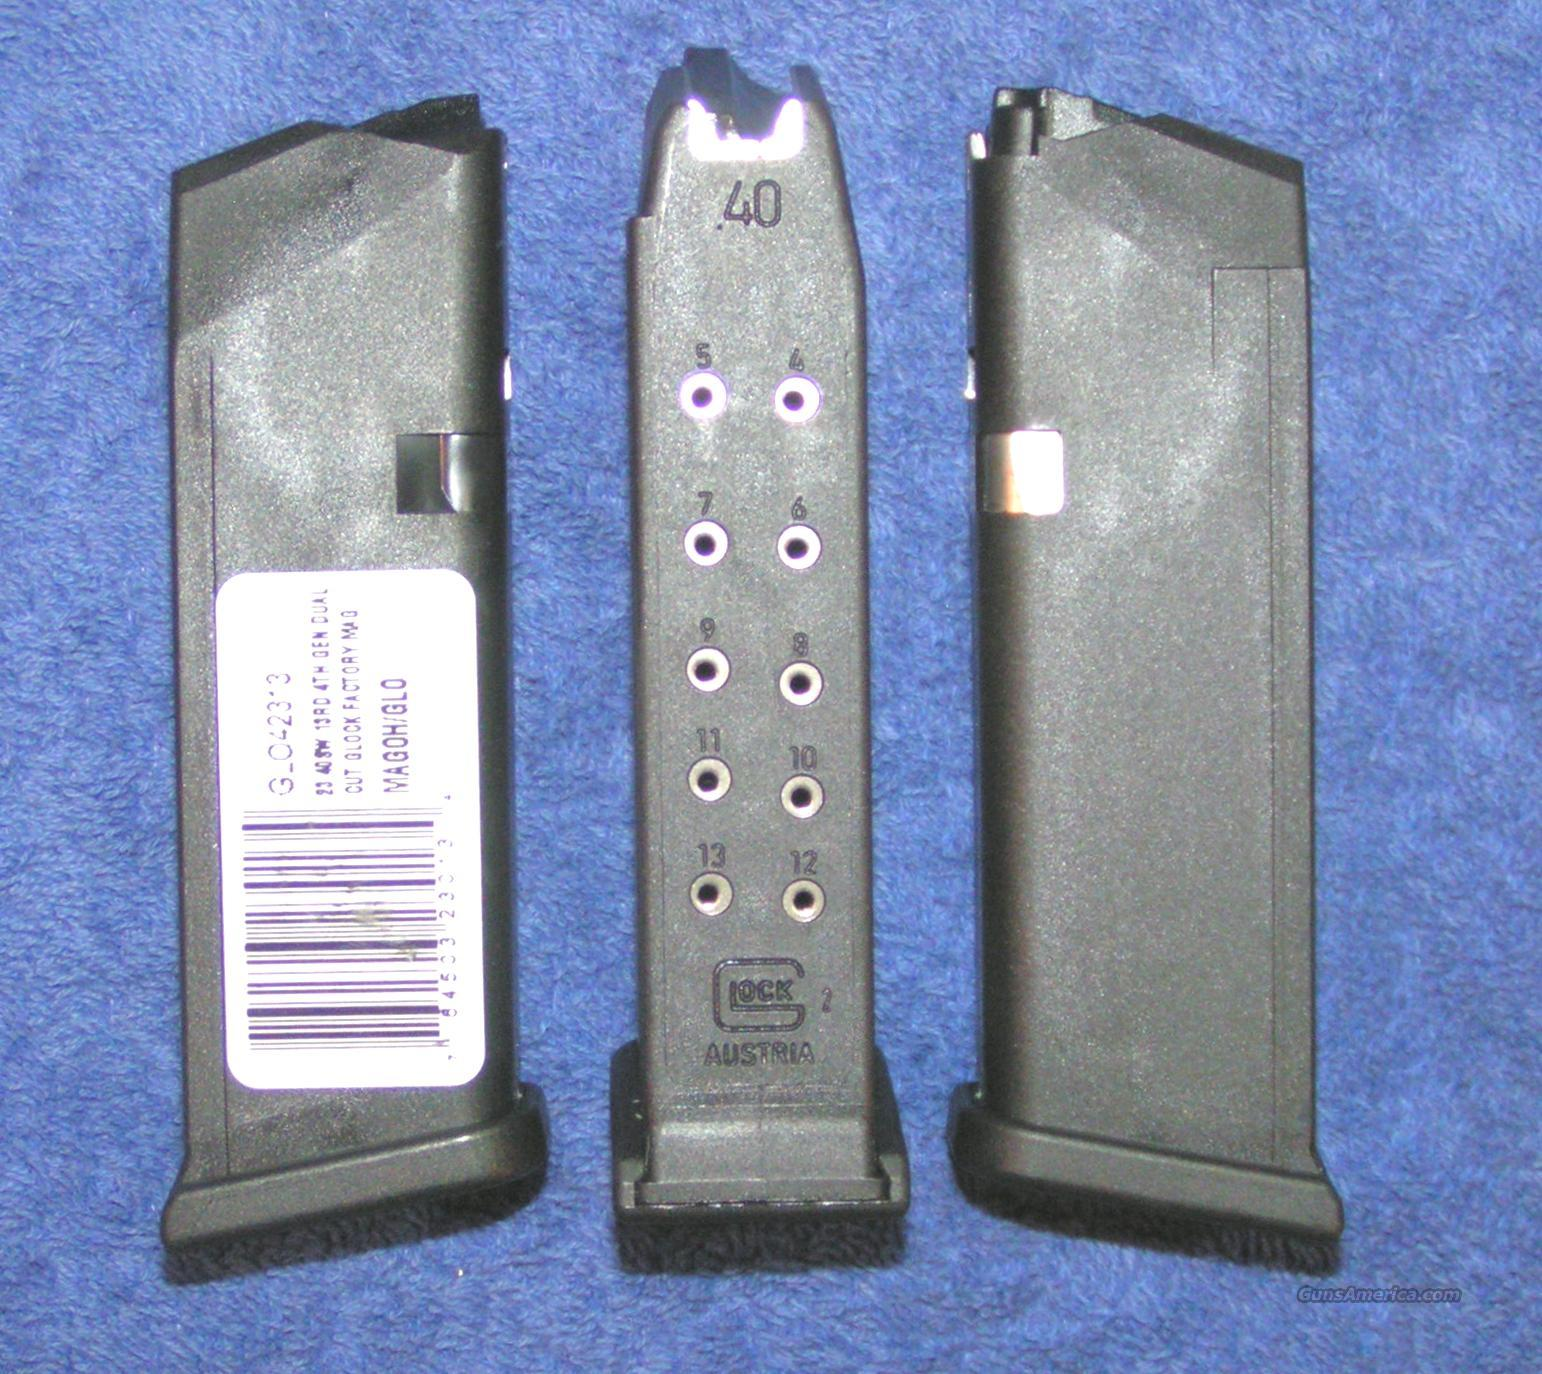 3 Glock 23 mags. NEW factory drop free $25 each Gen 4  Non-Guns > Magazines & Clips > Pistol Magazines > Glock